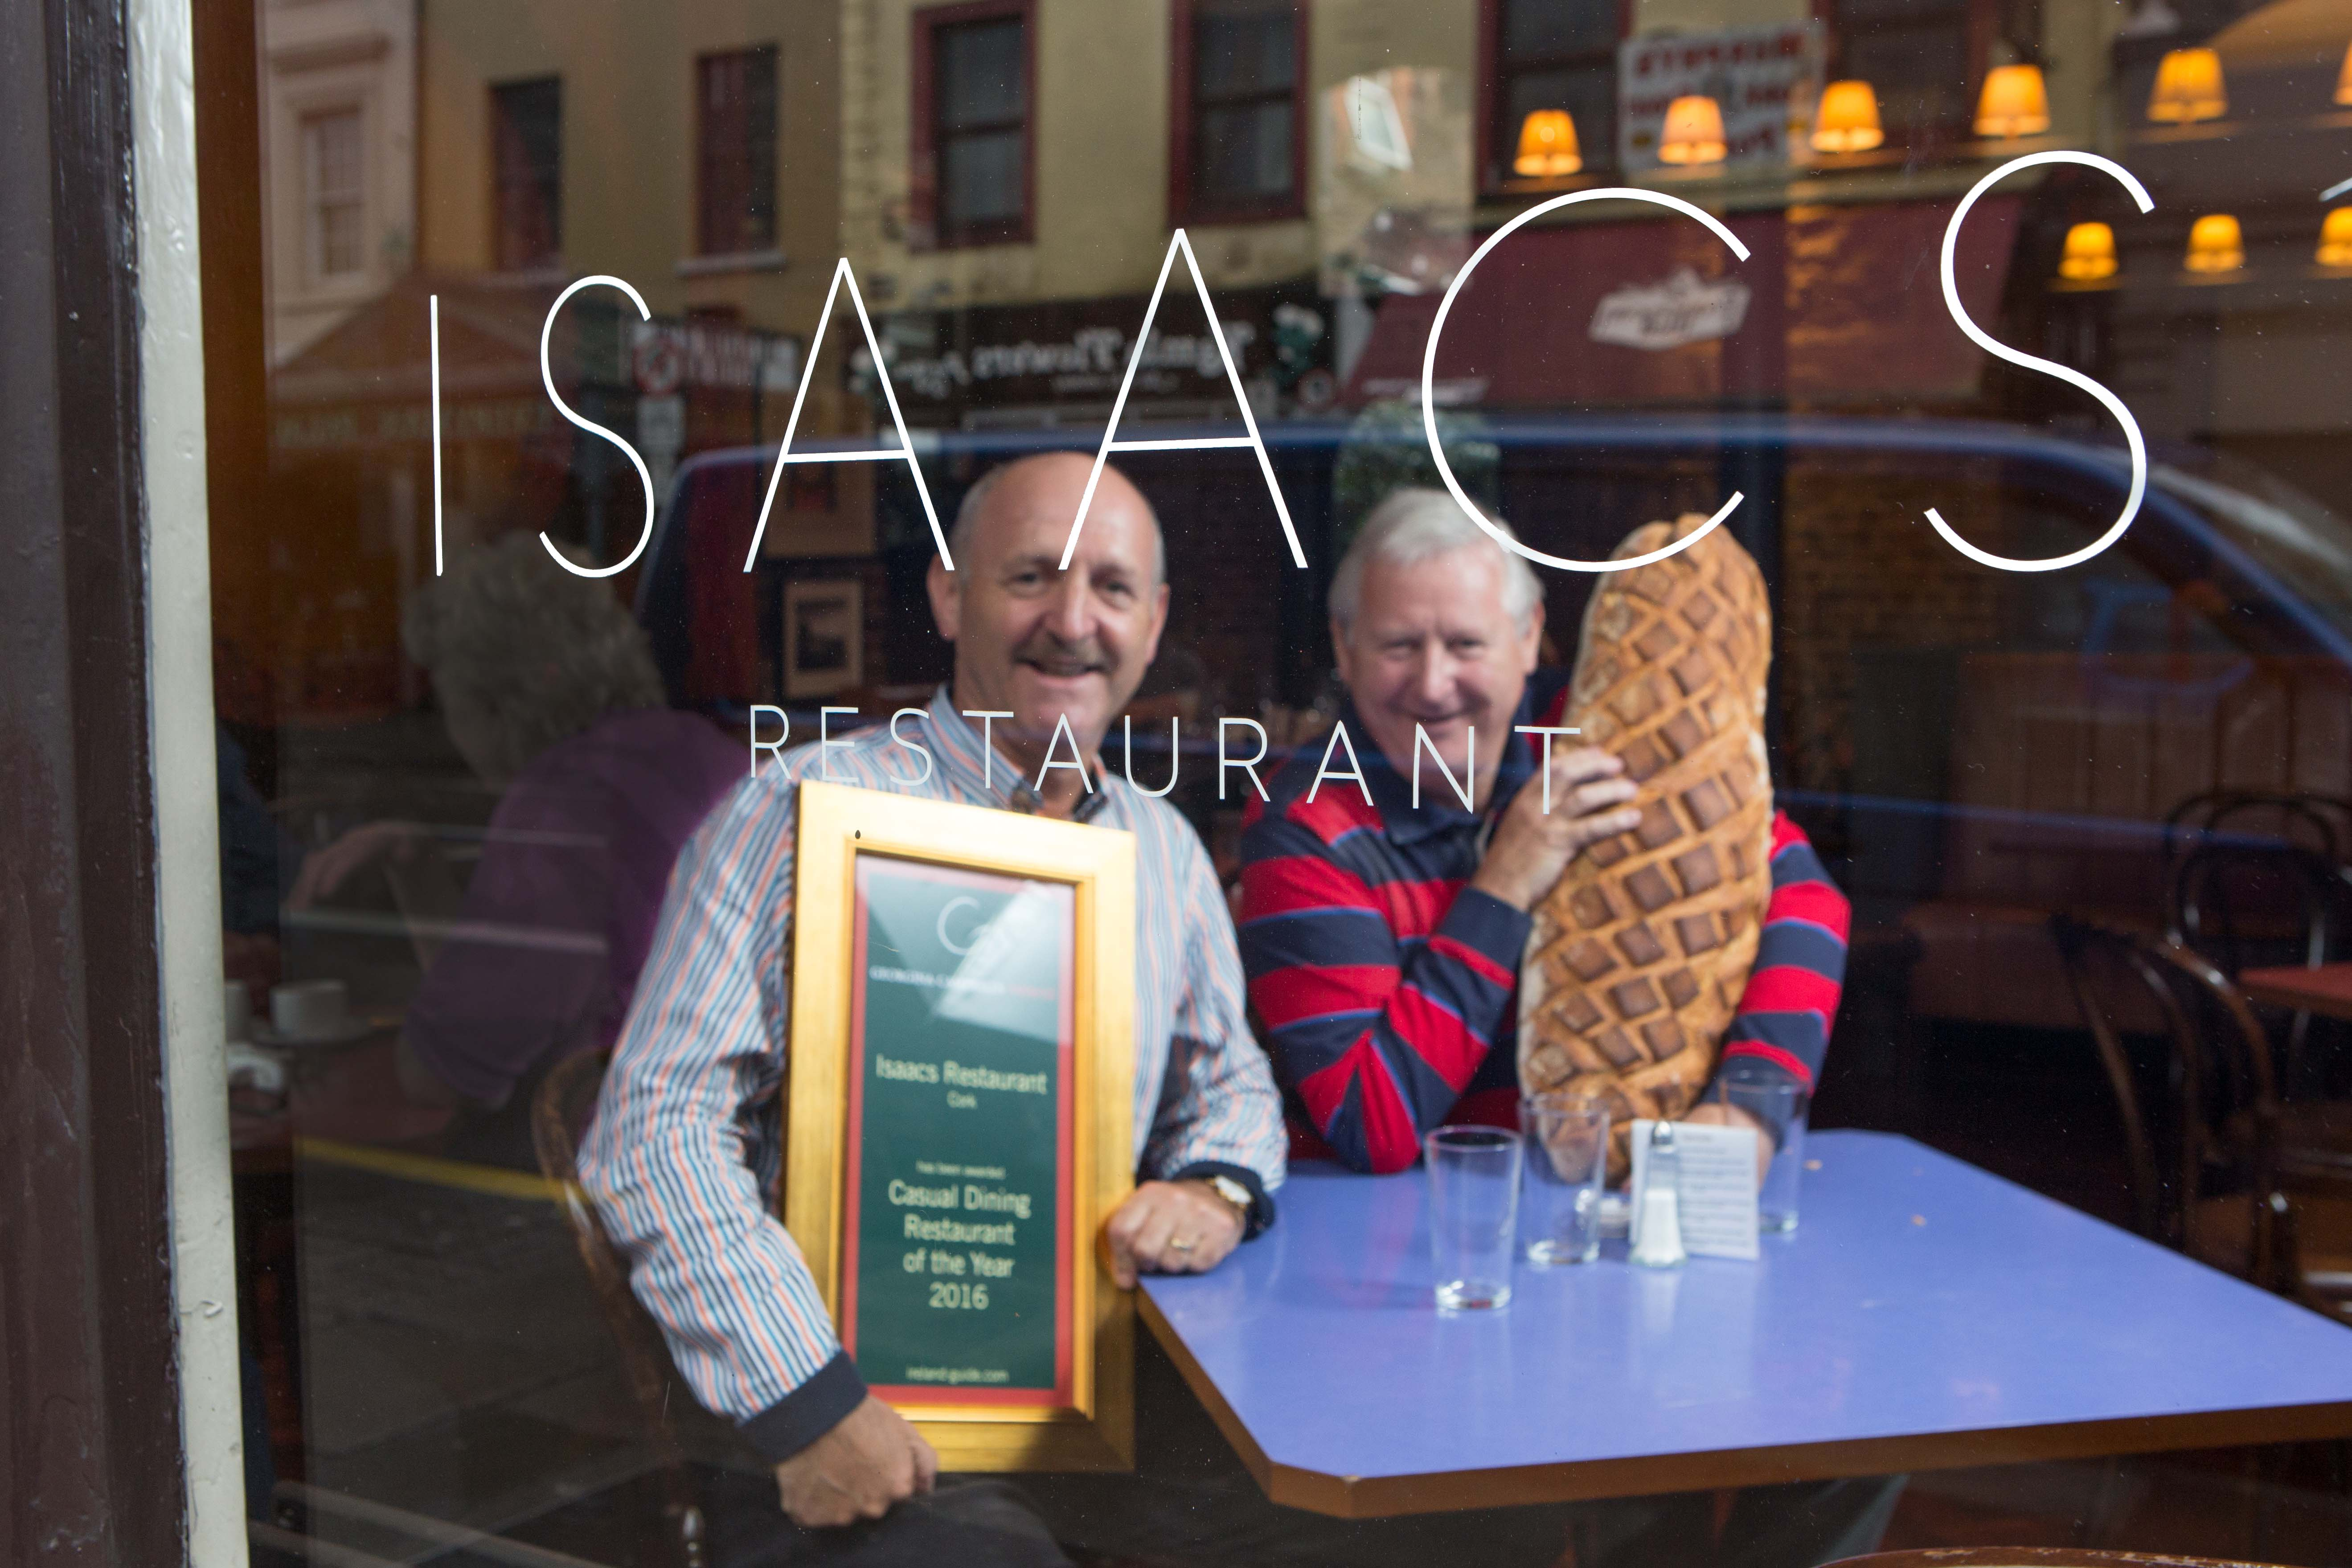 Isaacs Restaurant wins award